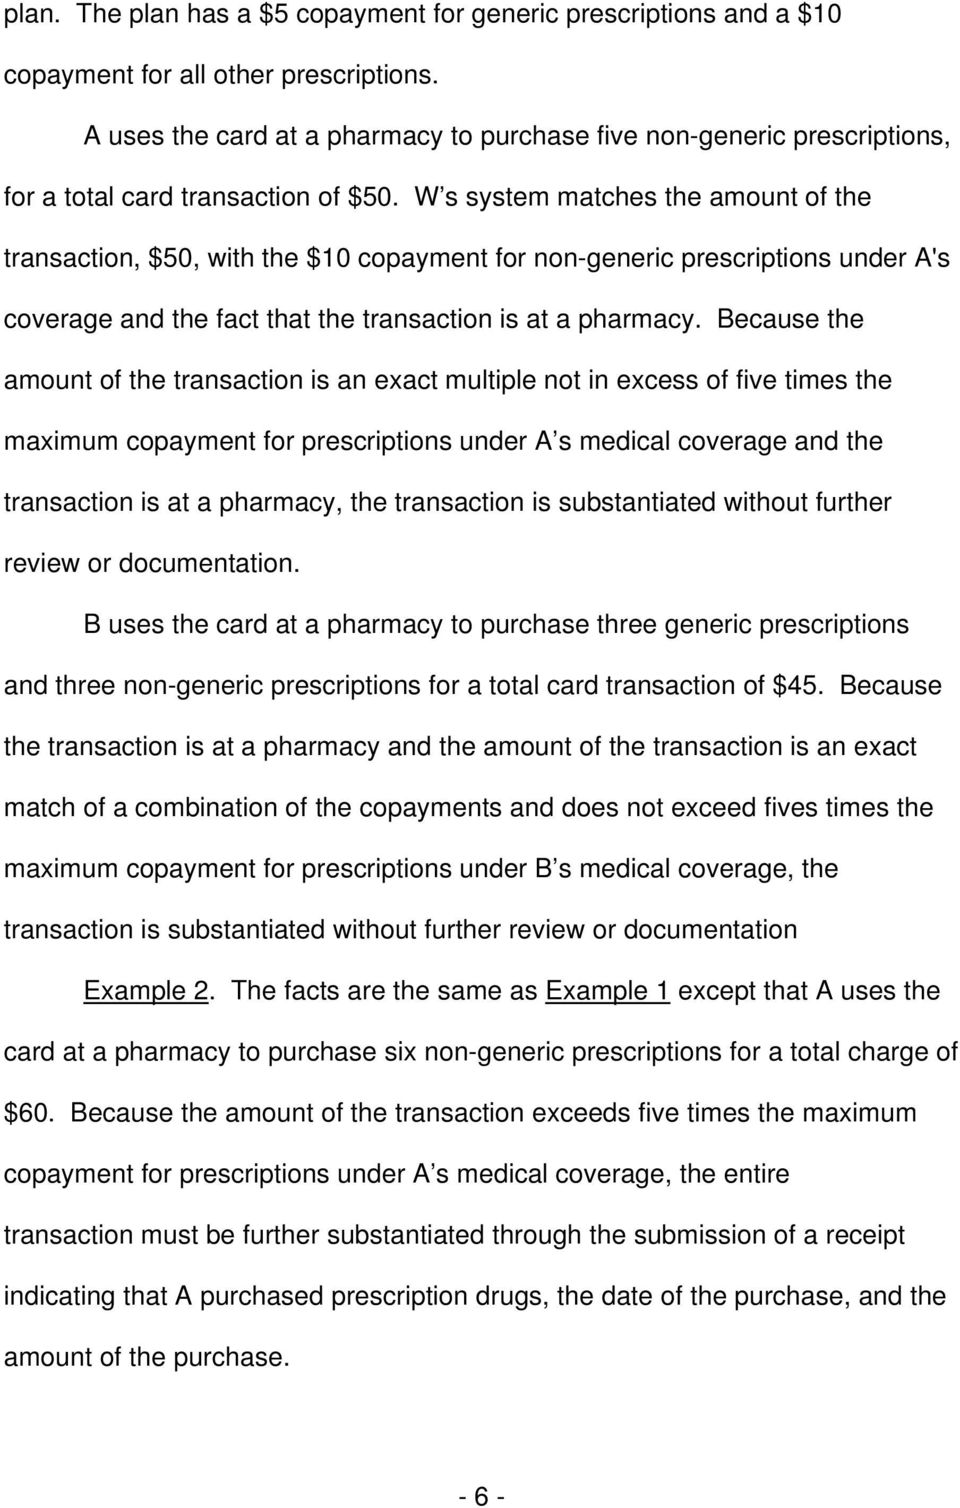 W s system matches the amount of the transaction, $50, with the $10 copayment for non-generic prescriptions under A's coverage and the fact that the transaction is at a pharmacy.